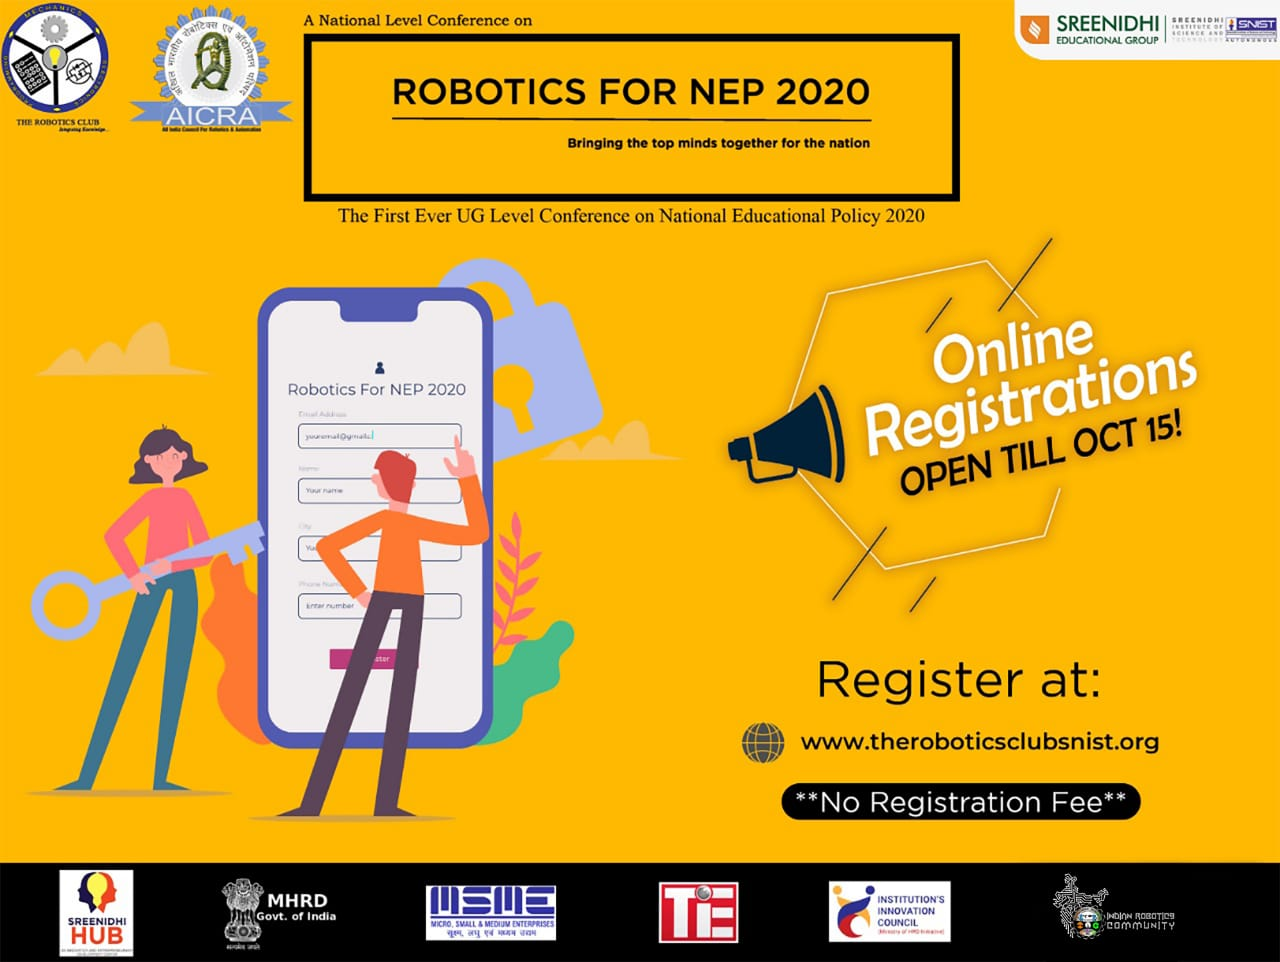 National Level Conference on Robotics for National Educational Policy 2020